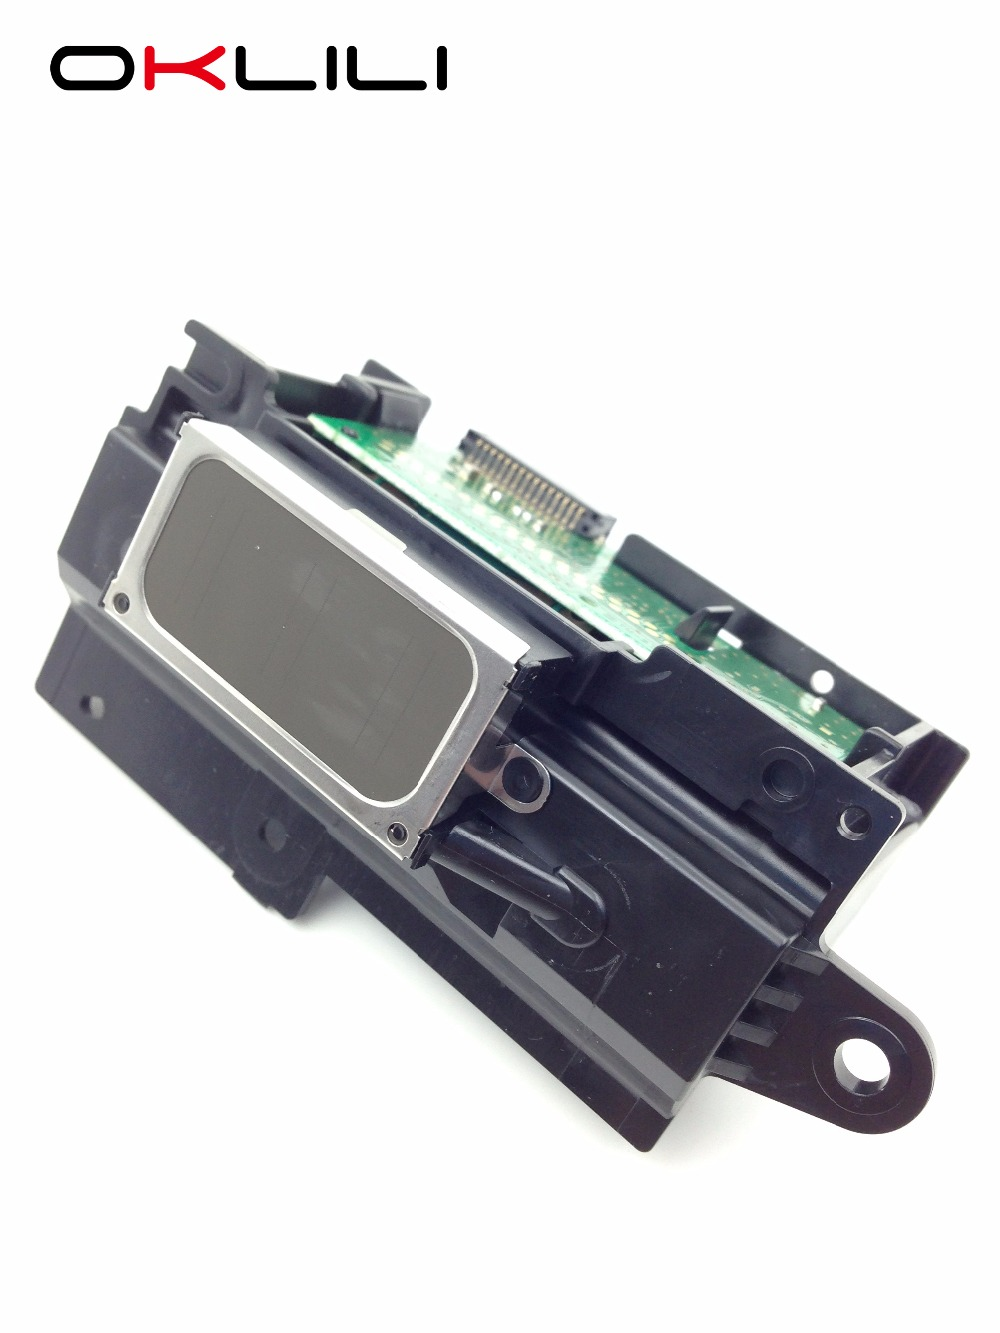 ORIGINAL NEW F094000 F094001 F094010 Printhead Print Head Printer head for Epson STYLUS C60 C62 CX3100 CX3200 I8100 STYC60